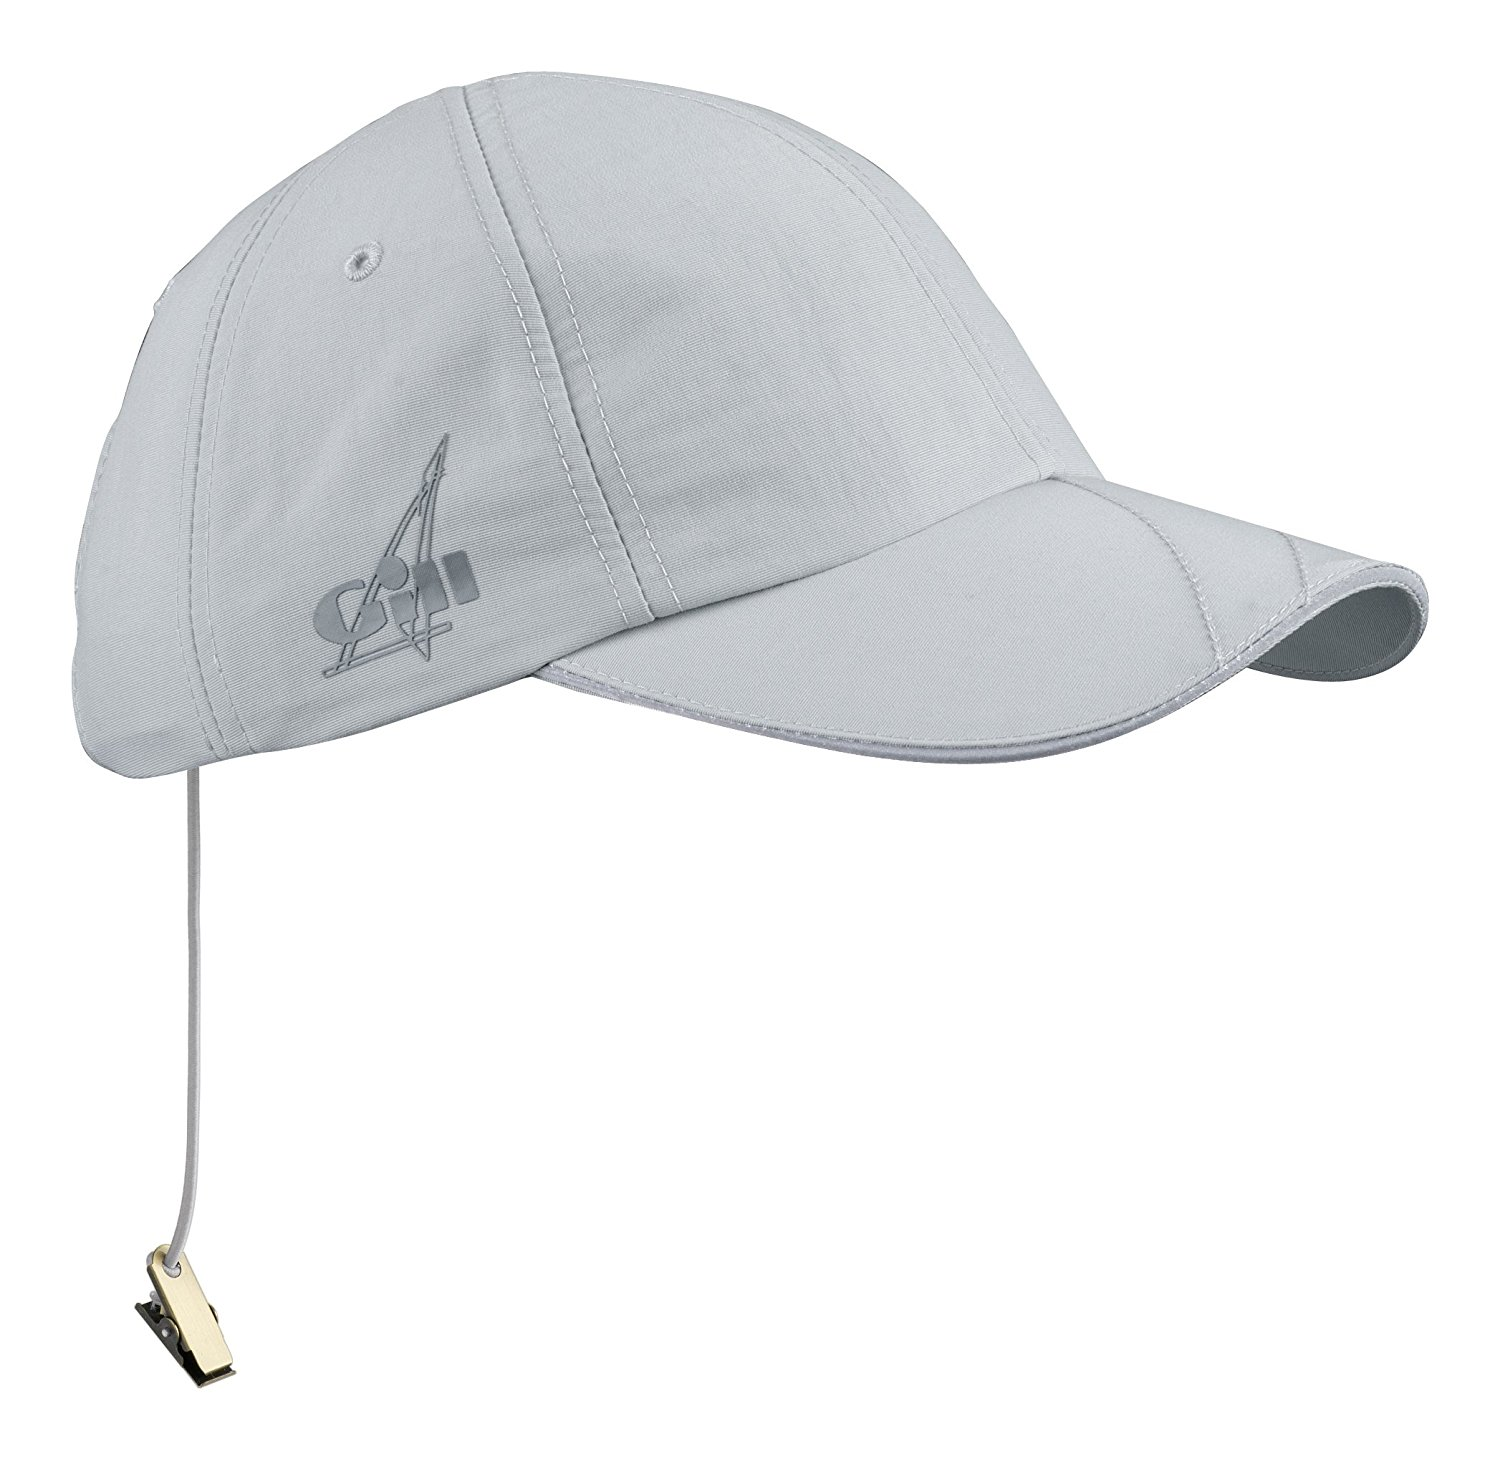 Details about Gill Technical Uv Sun Cap With Retainer 684103ca9f8